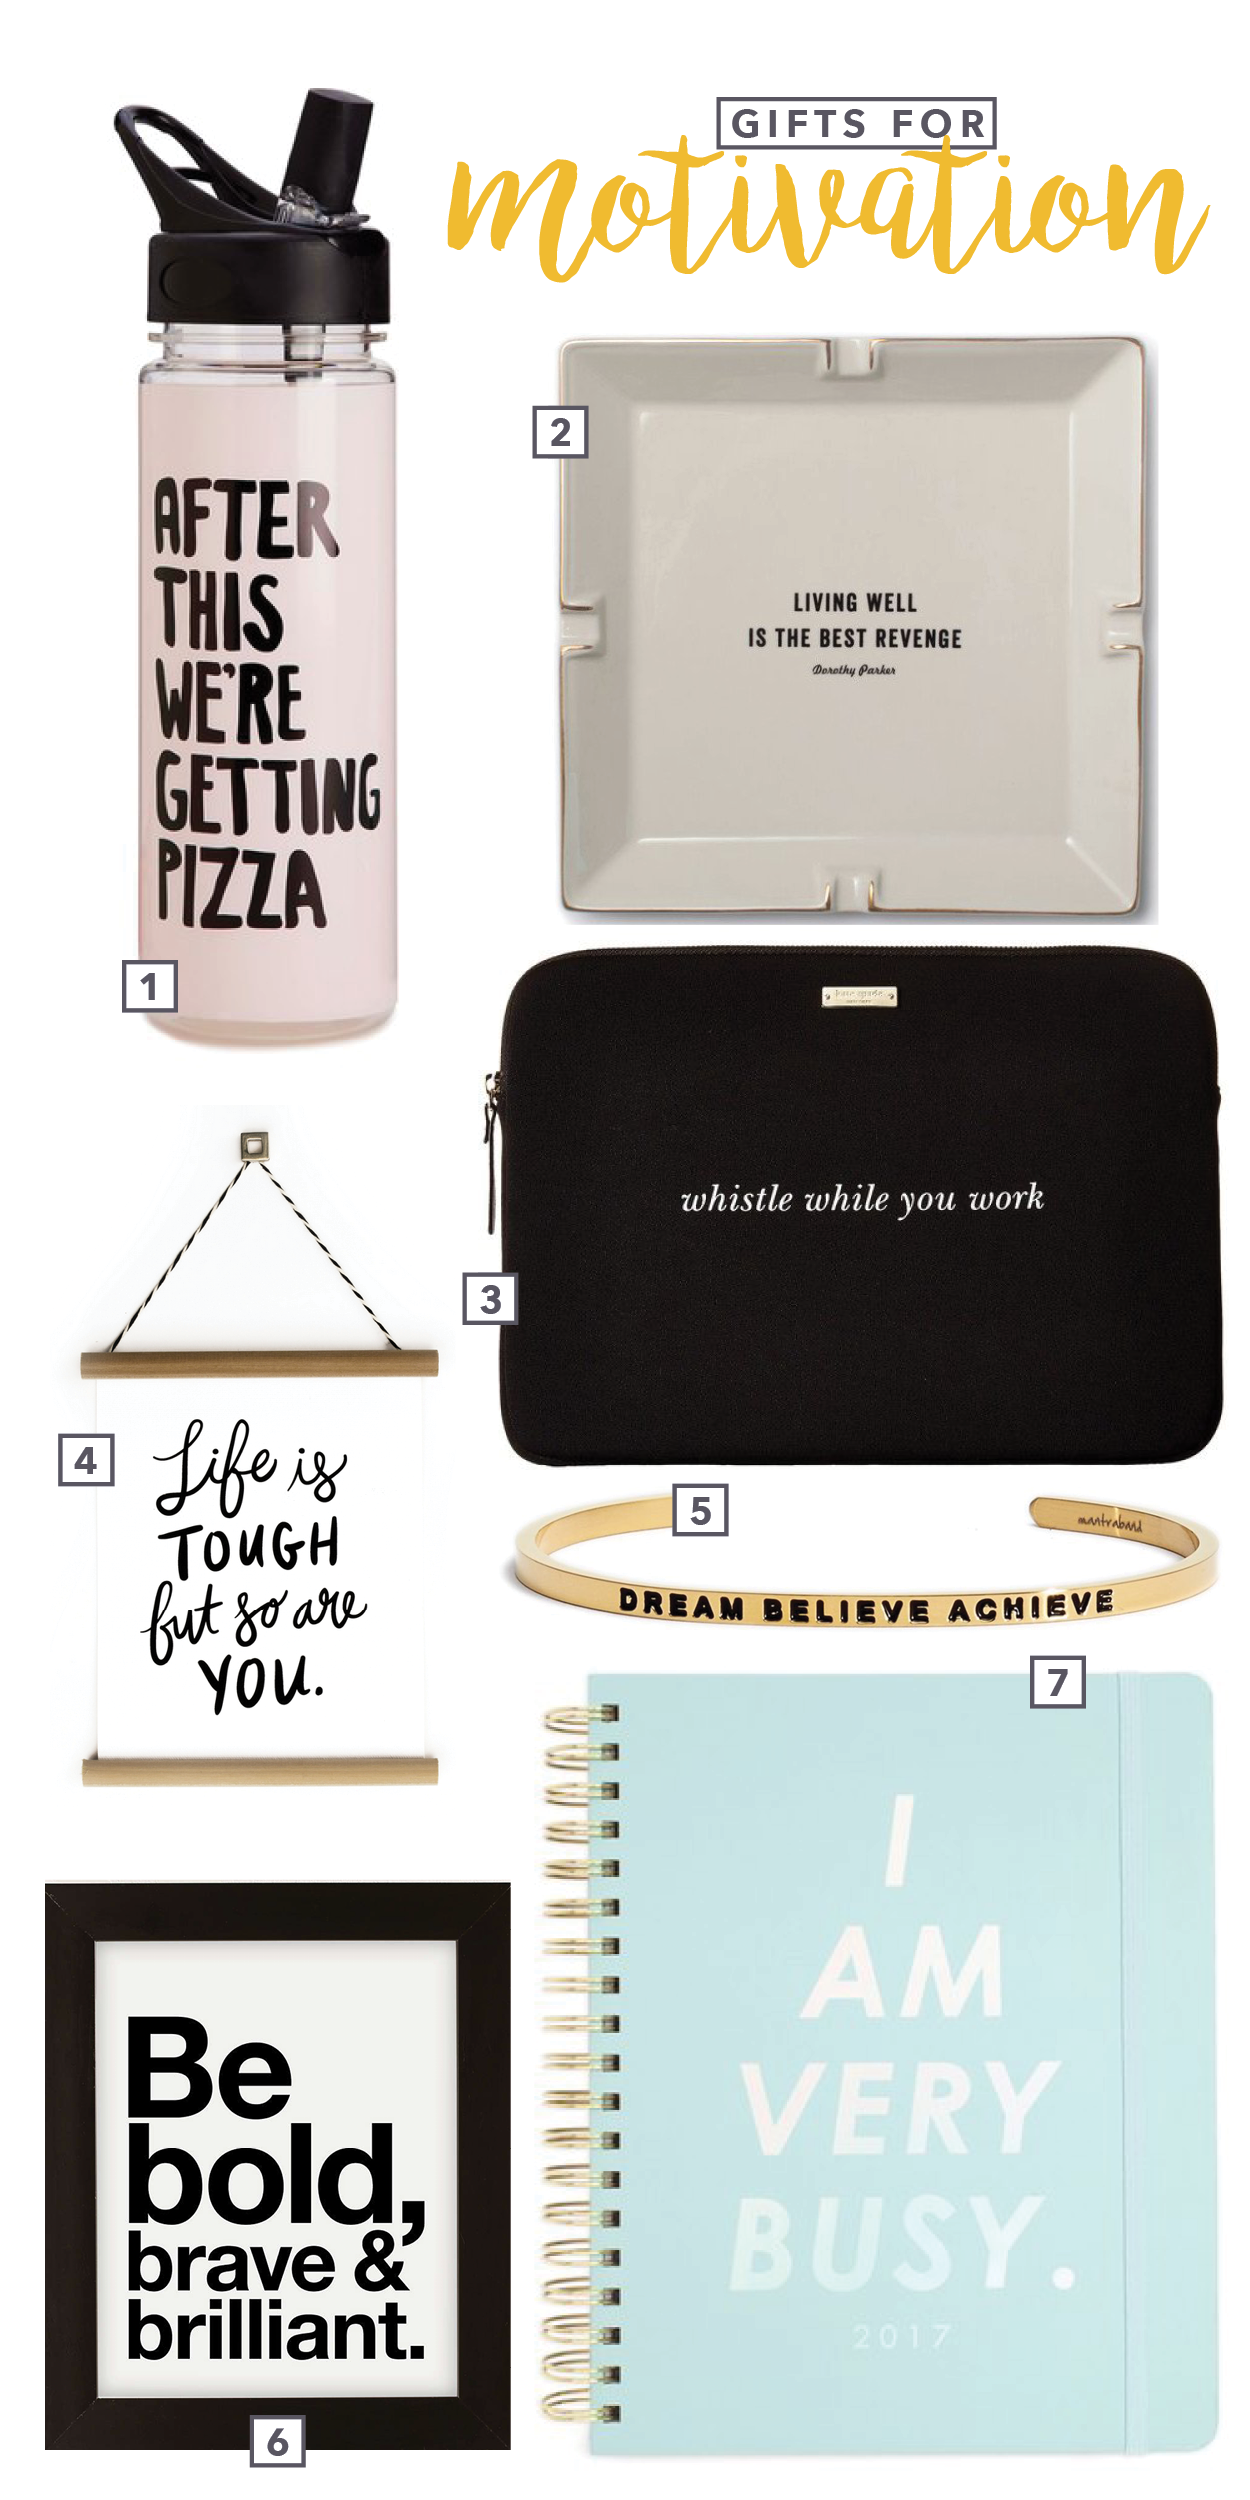 Gifts for Motivation